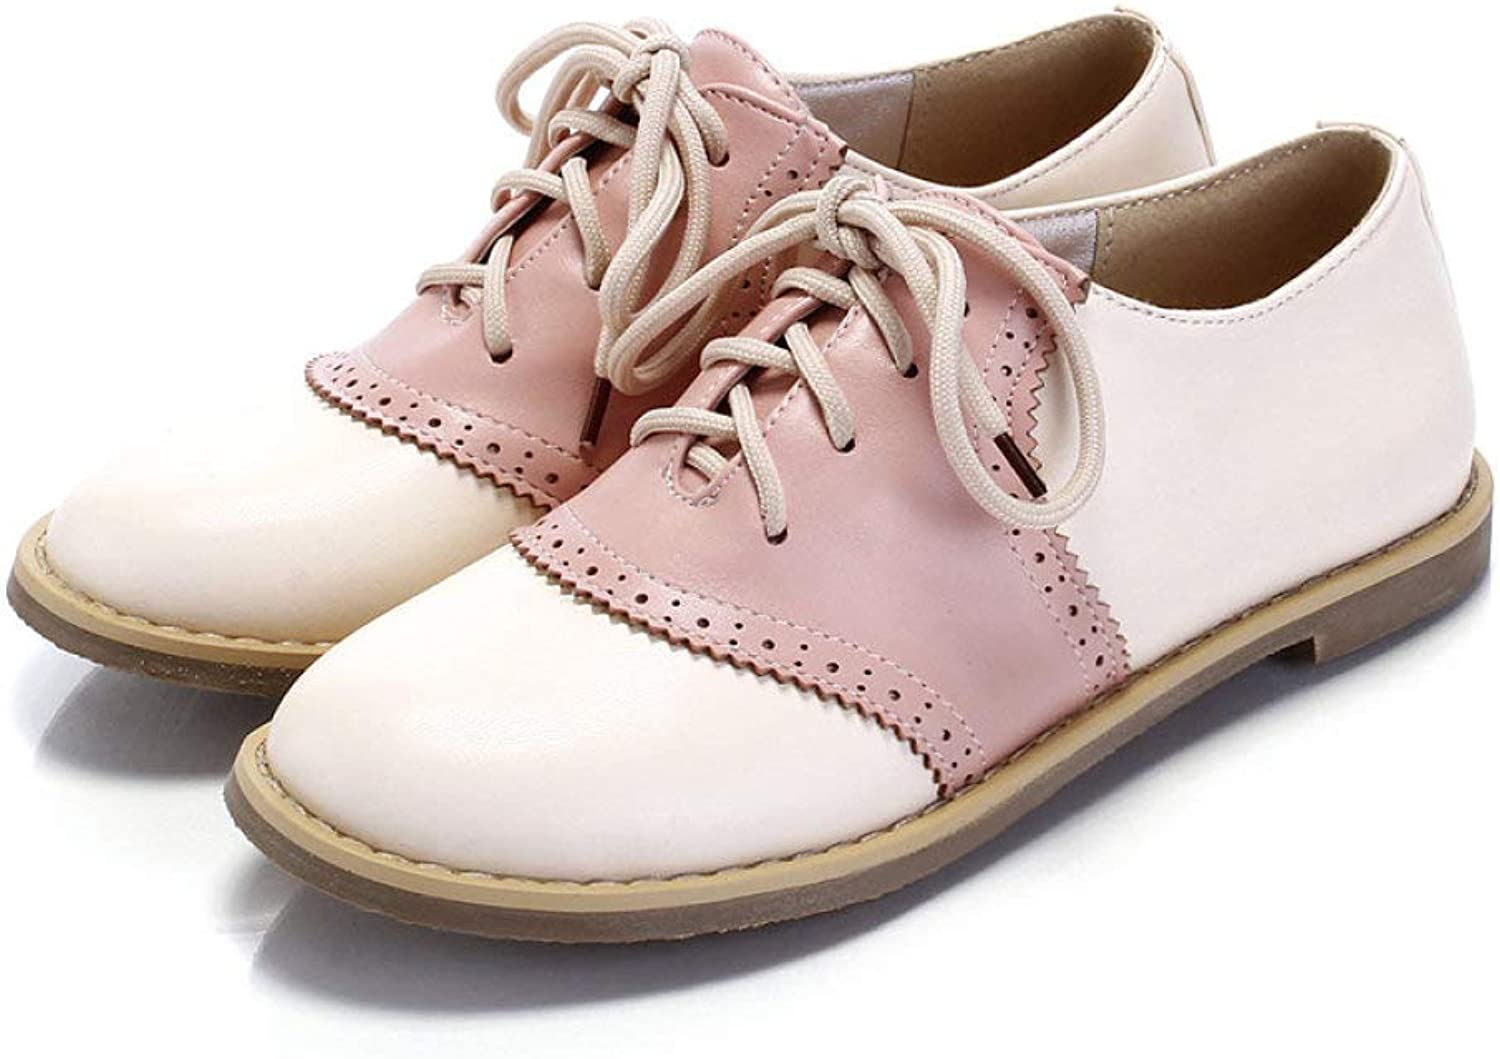 Fay Waters Women's Two Tone Saddle Oxfords Round Toe Lace Up Leather Casual Flat shoes